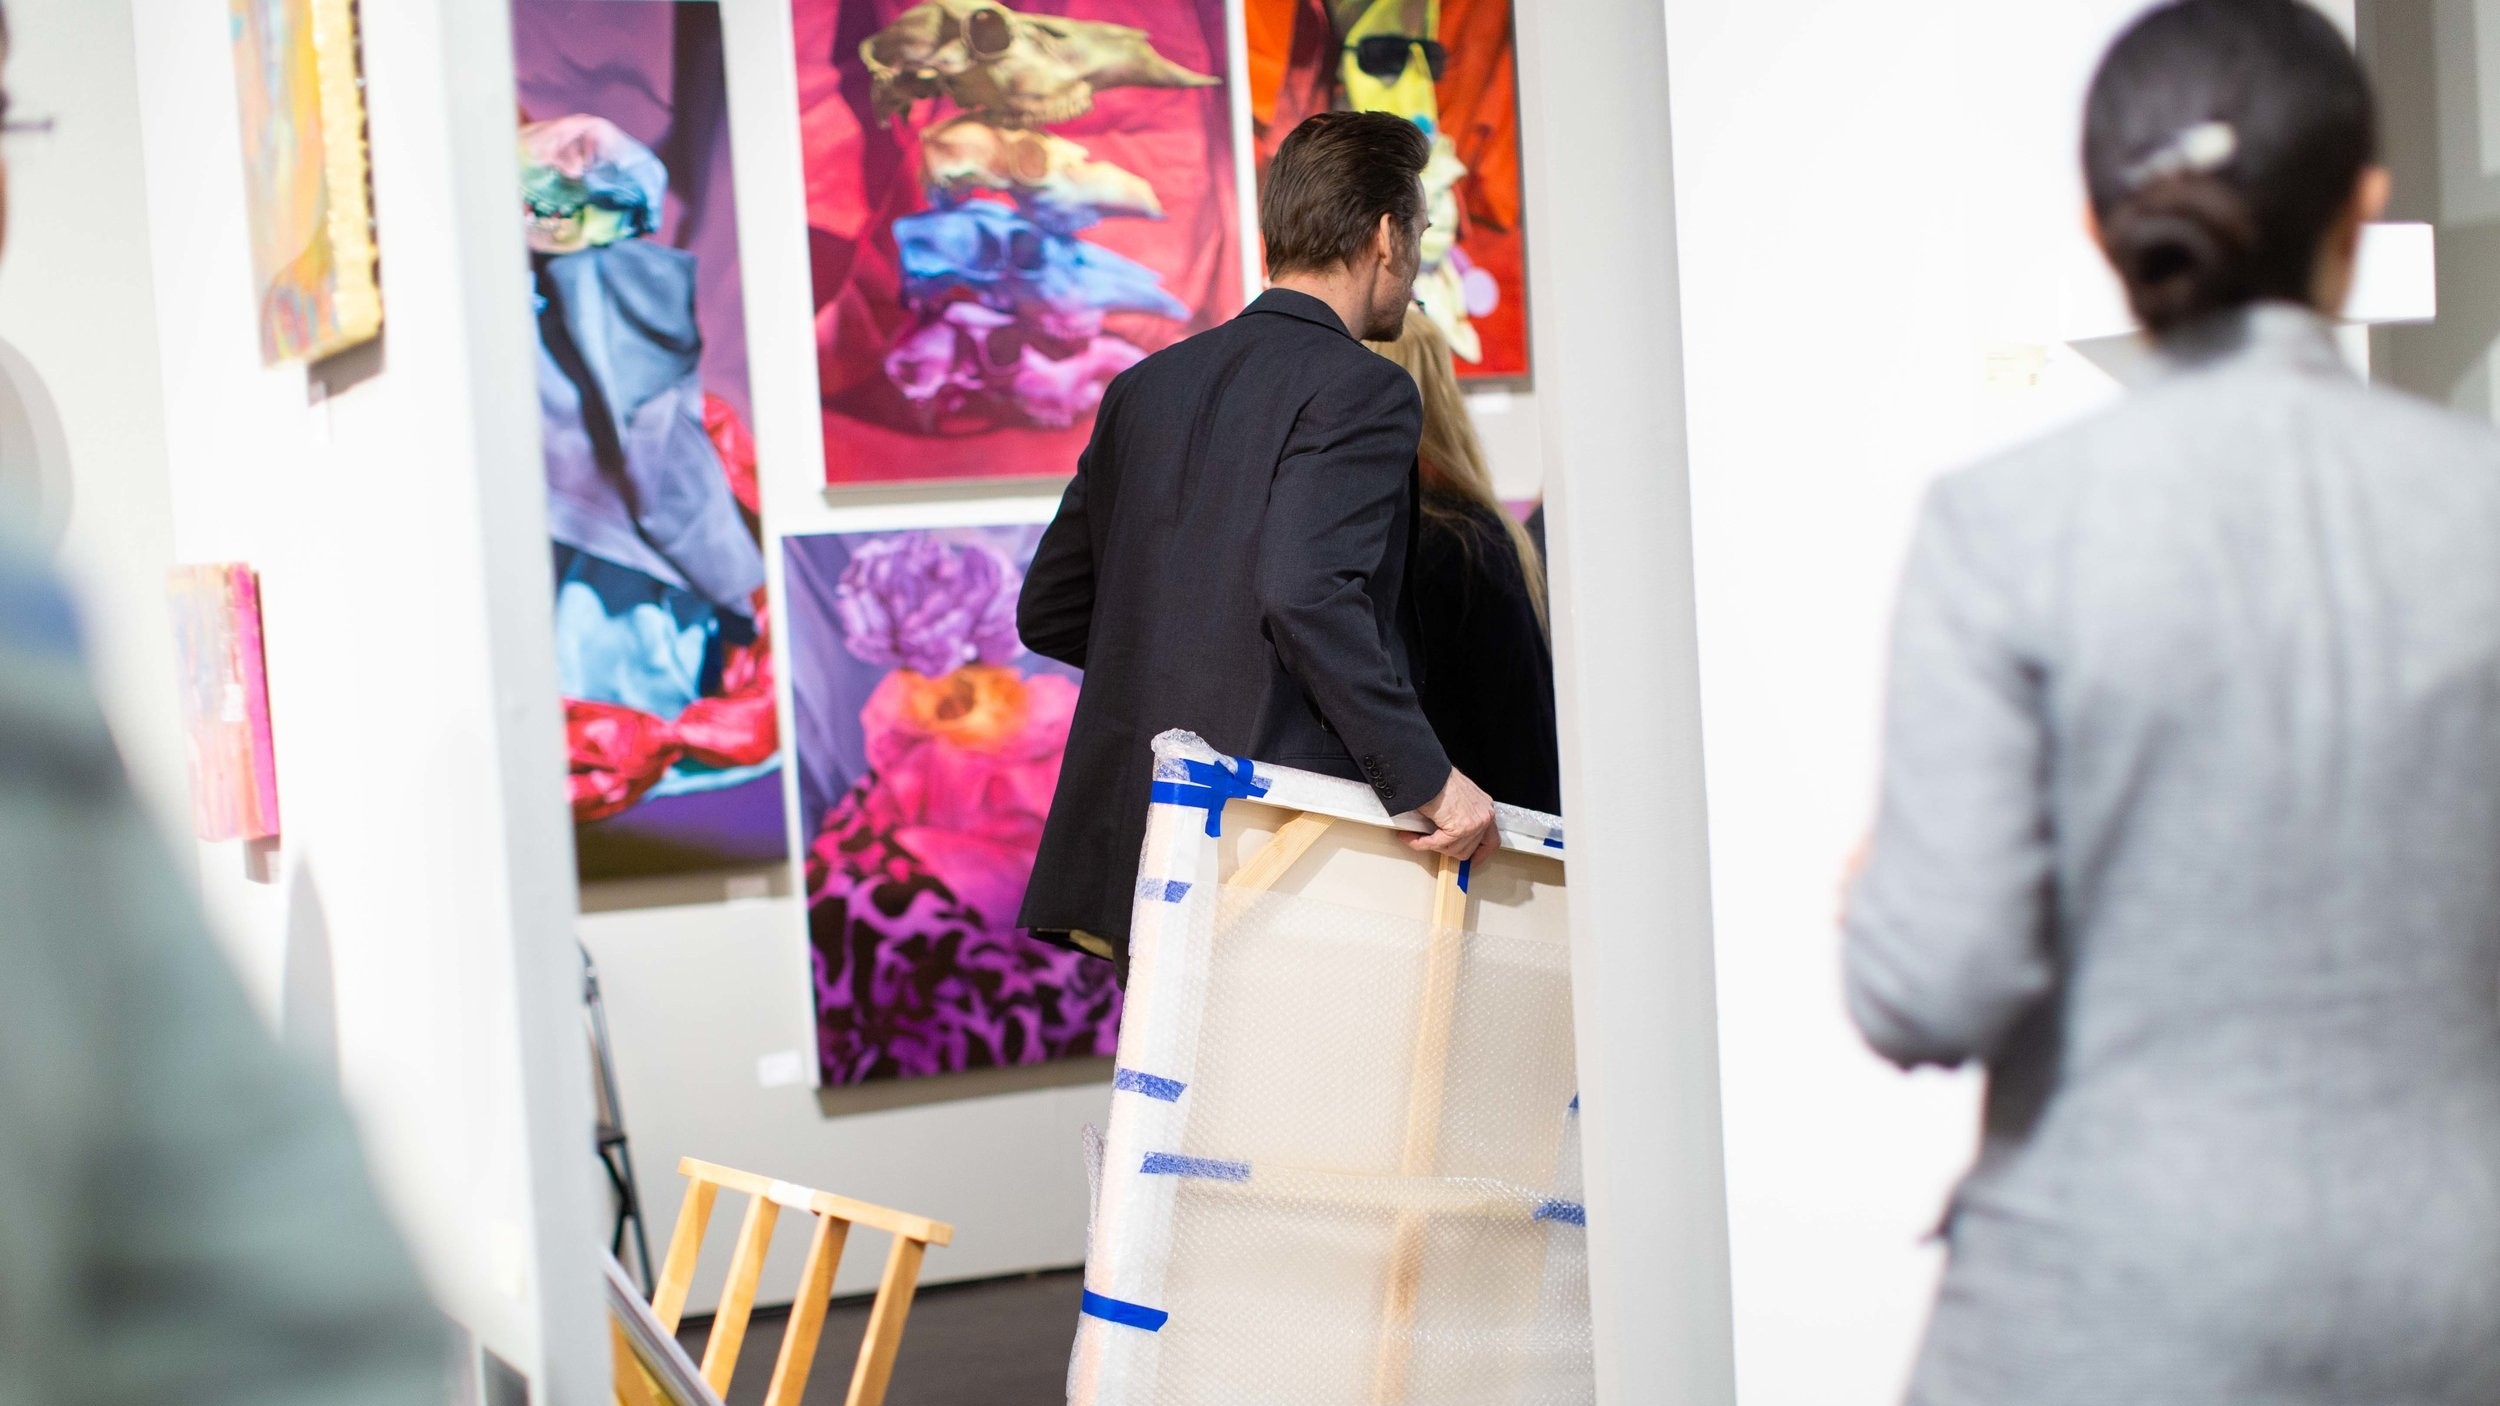 - 25% of our visitors make a significant ($100-$2,500+) art purchase.